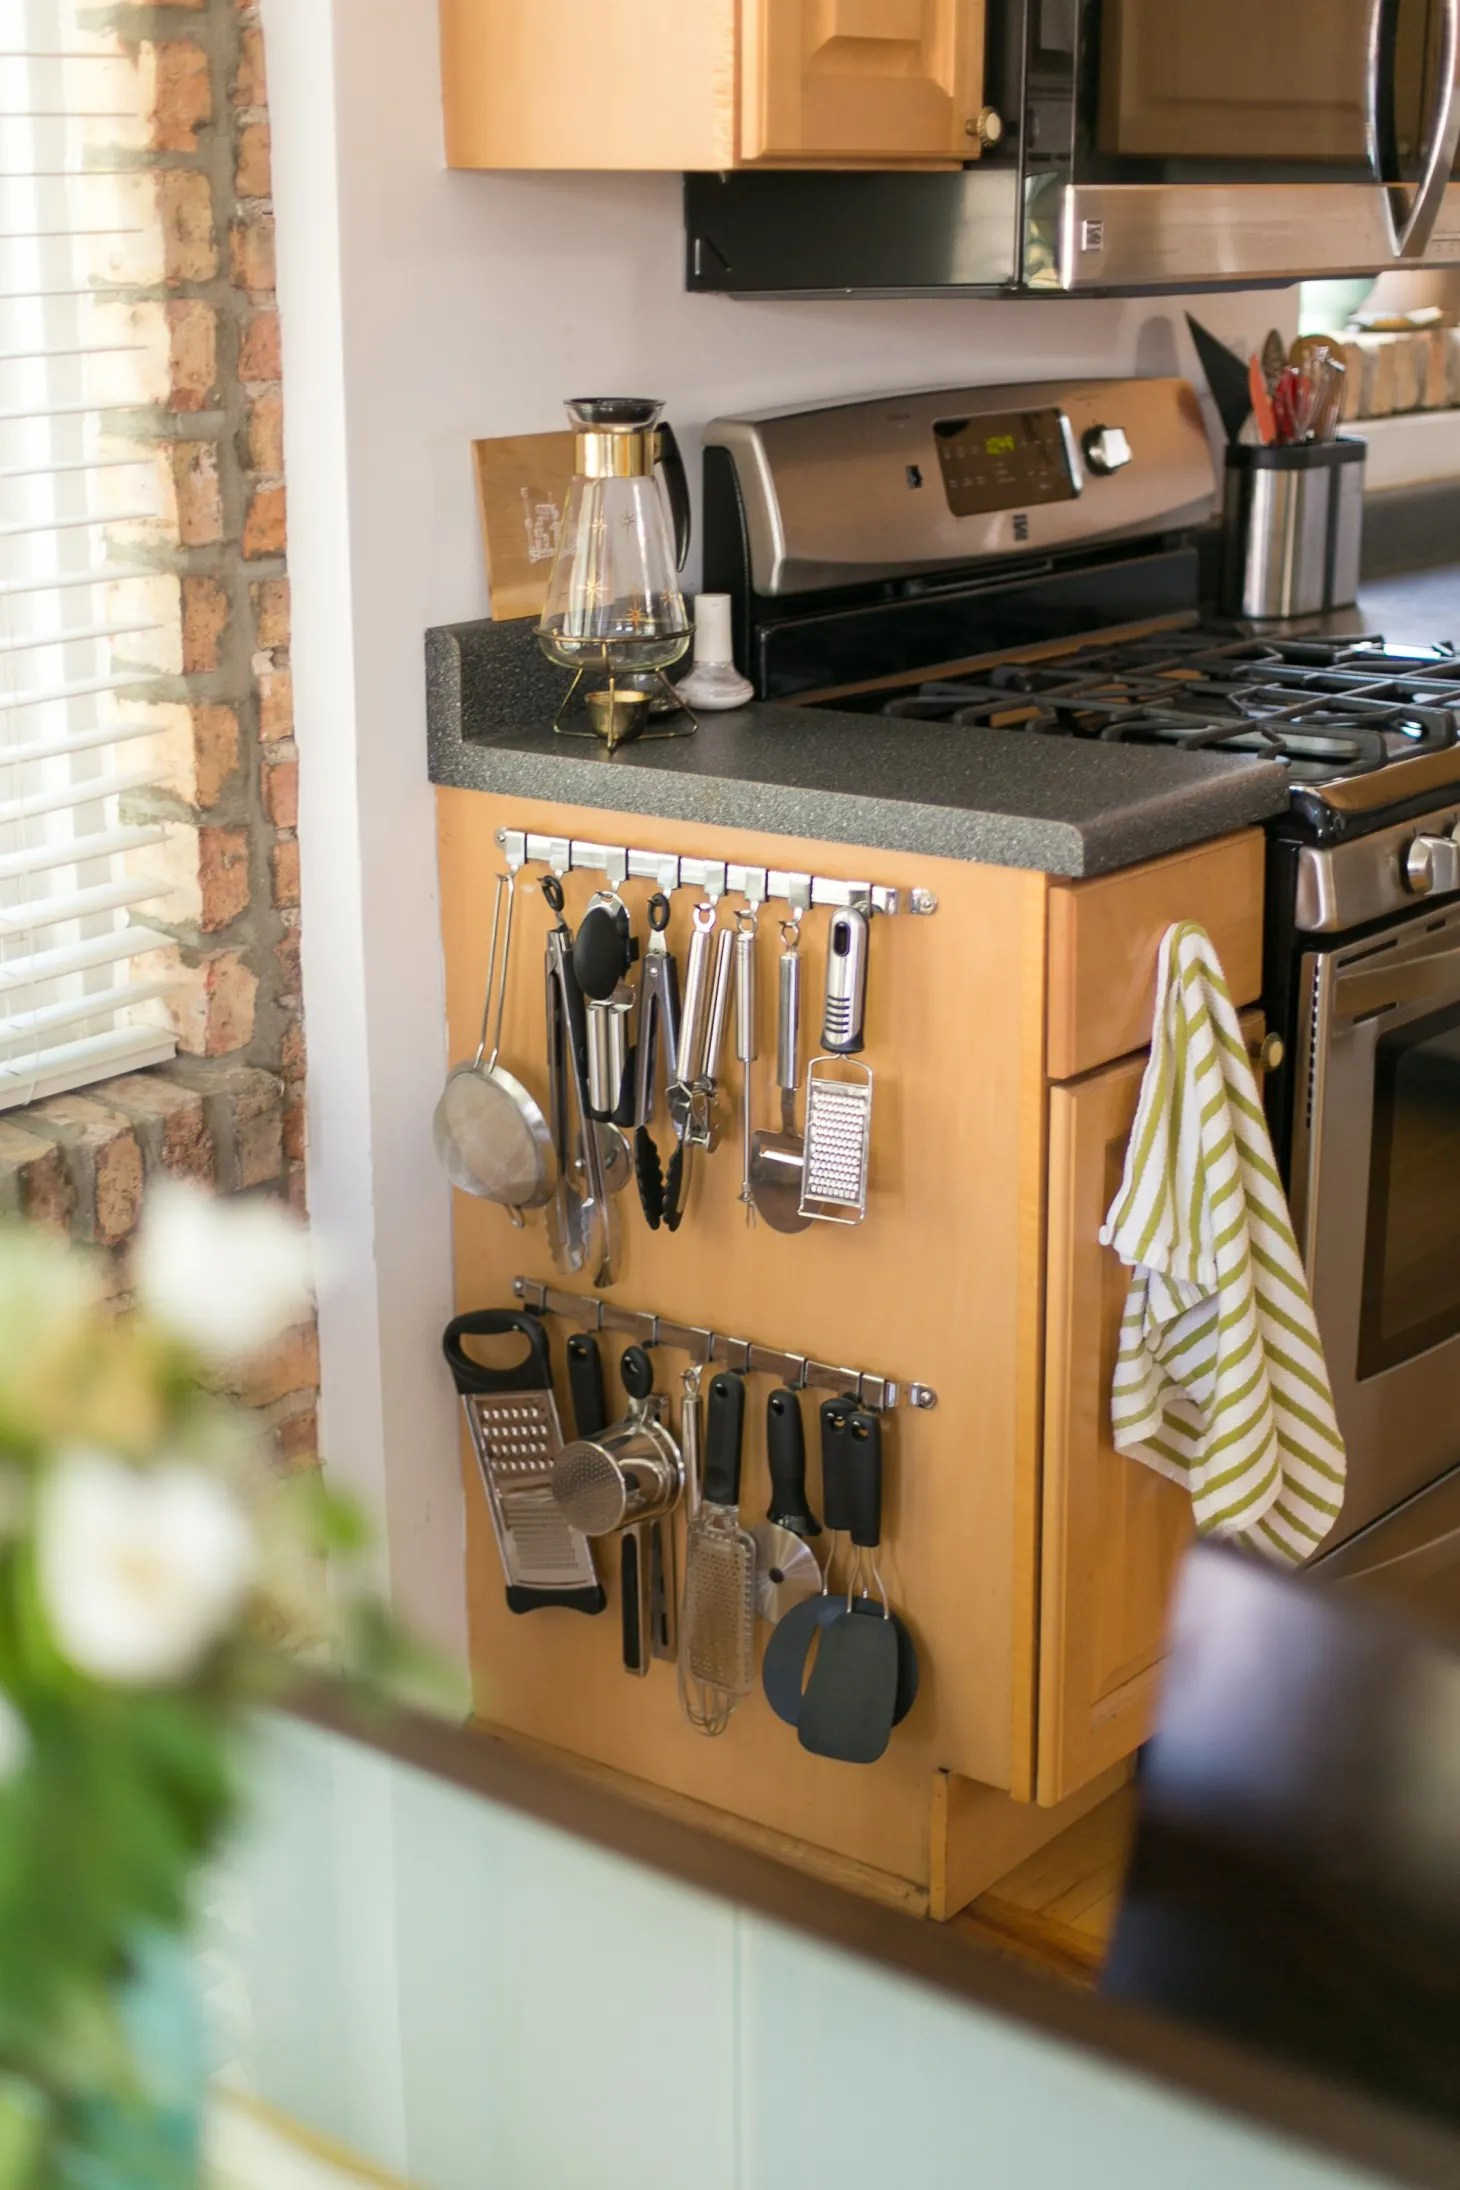 The 21 Best Storage Ideas for Small Kitchens | Kitchn on Best Small Kitchens  id=65044